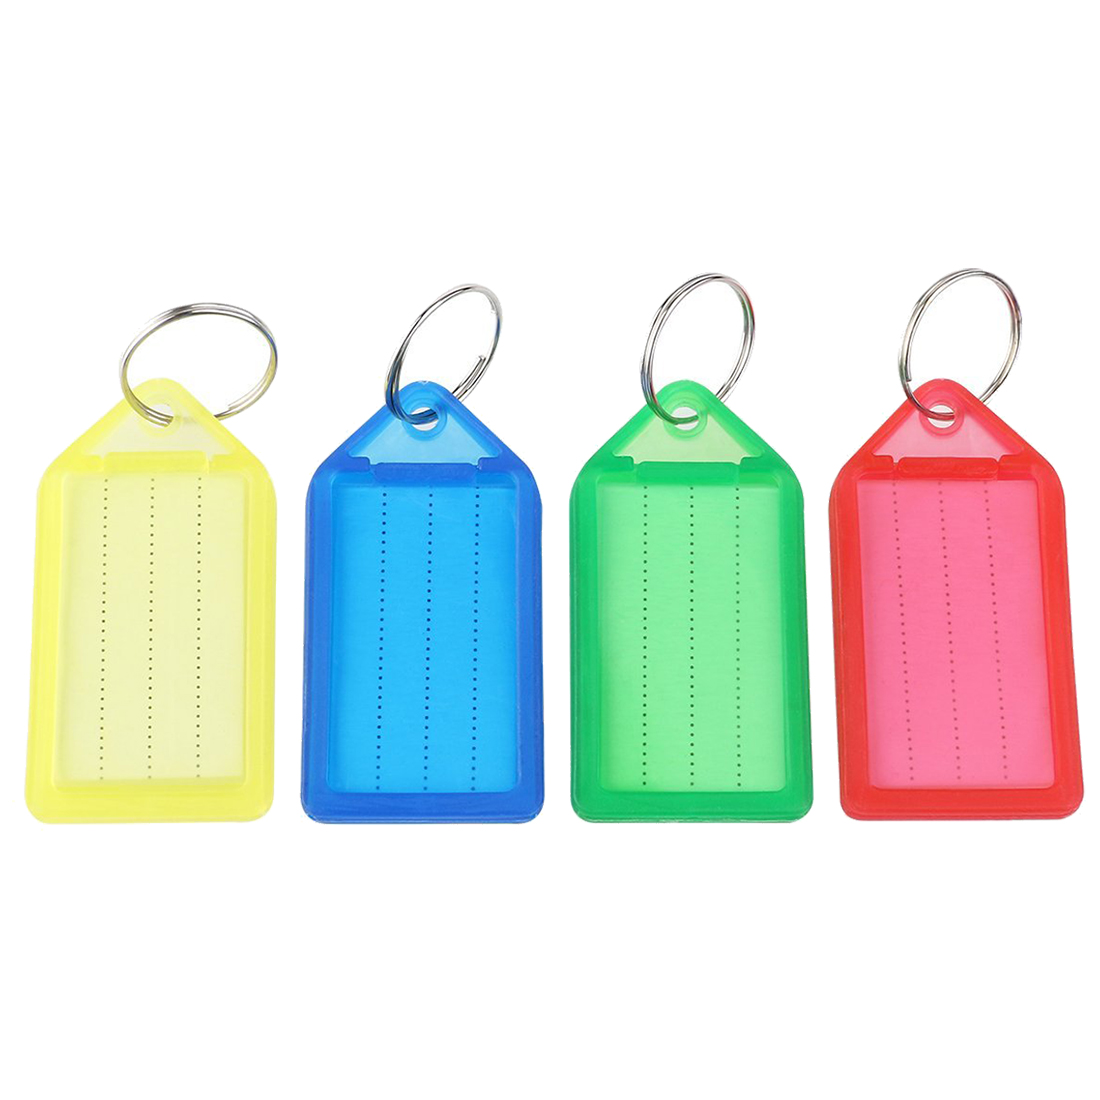 2X 60pcs plastic Slideable Key Fobs Luggage Tags with Key Rings Random Color